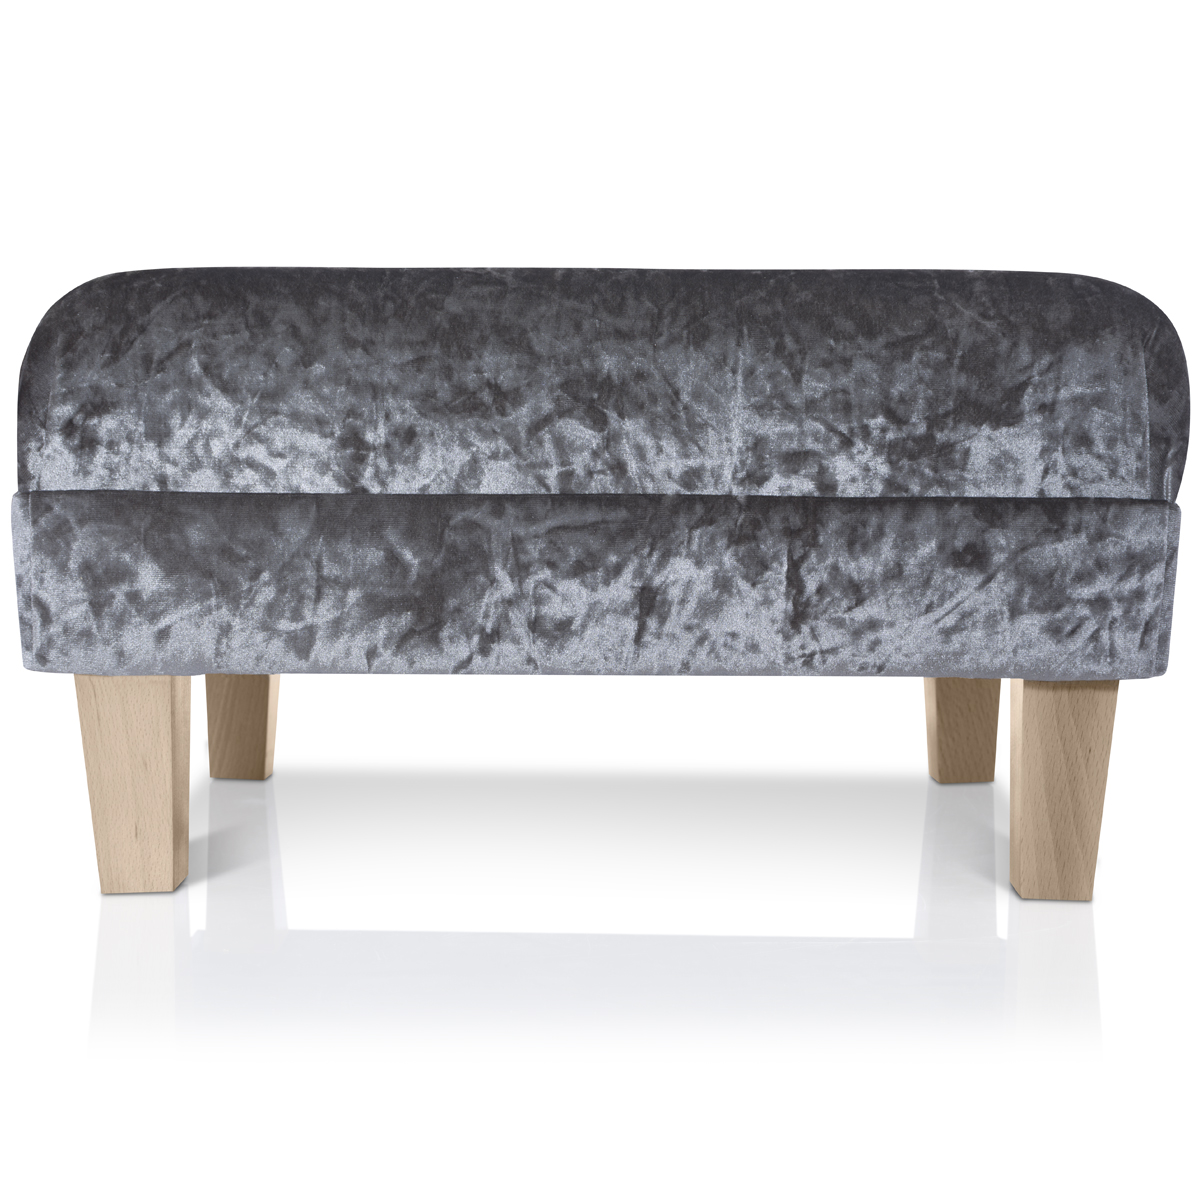 Klein Voetenbankje New Footstool Ottoman Crushed Velvet Foot Rest Small